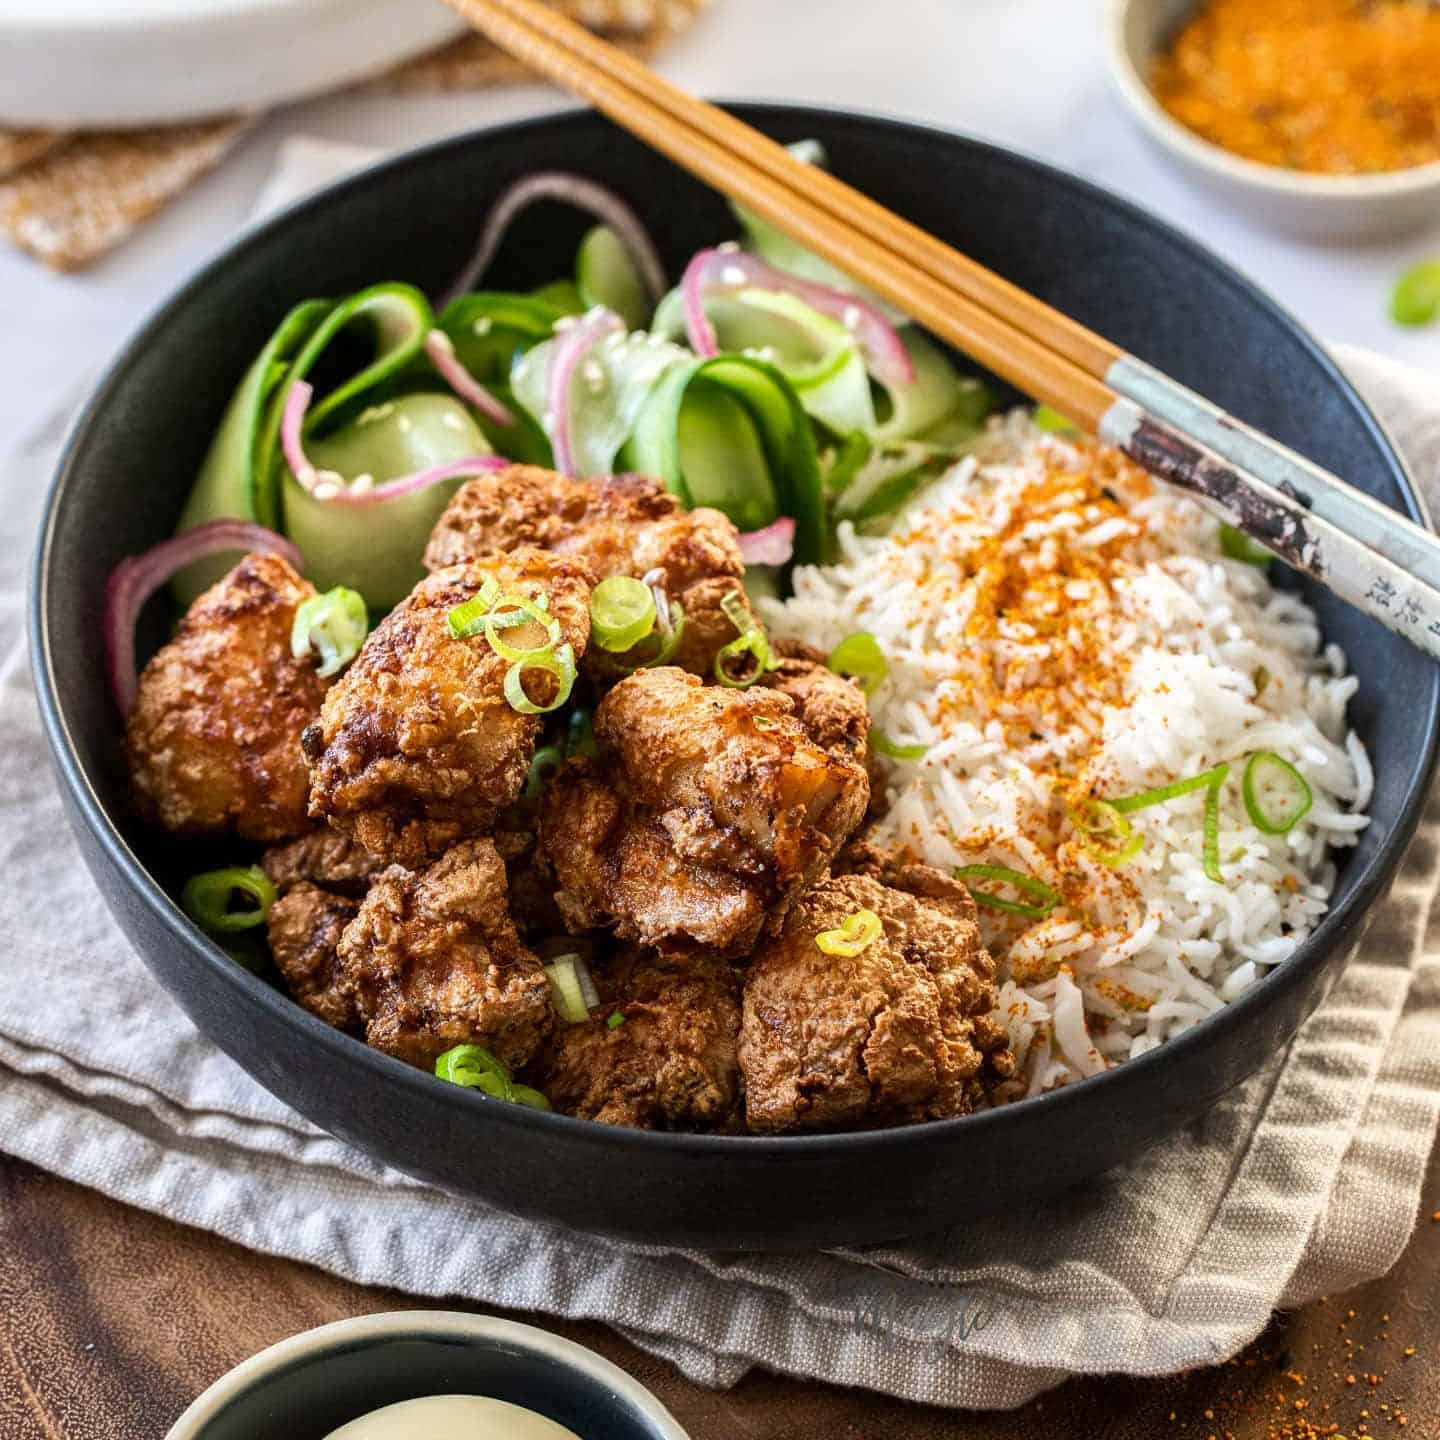 A black bowl filled with salad, rice and fried chicken, on a wooden platter.